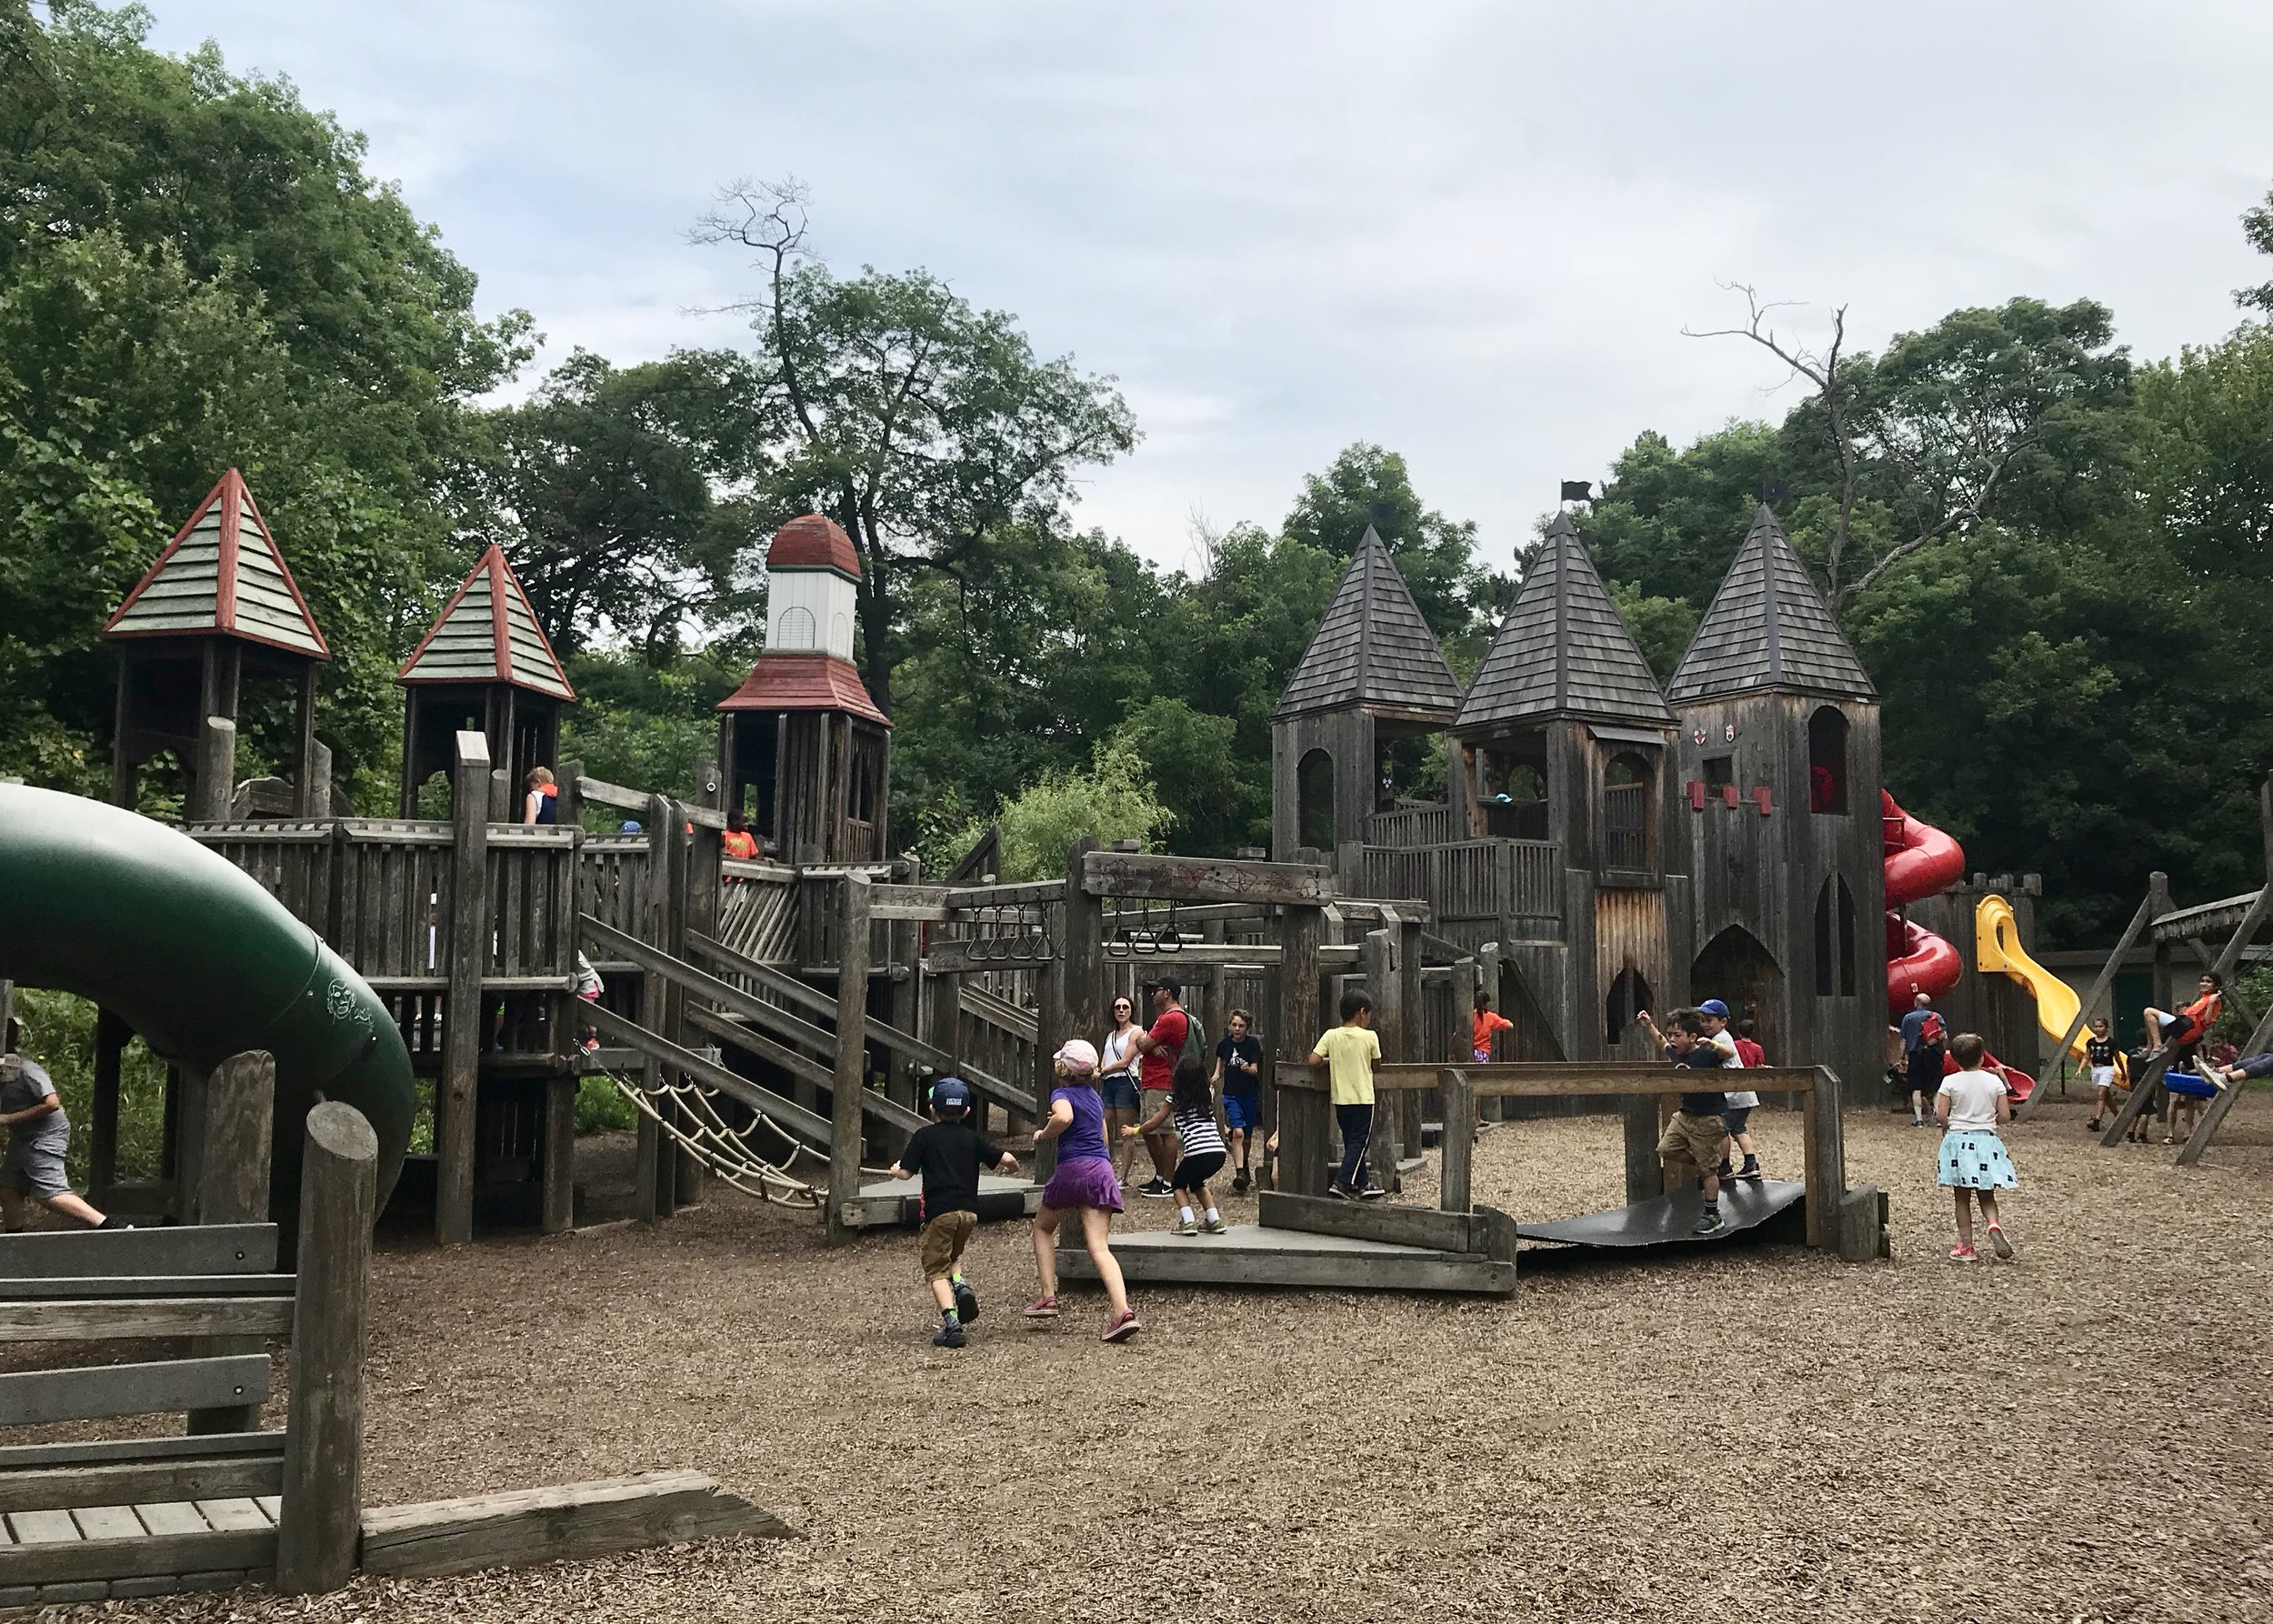 Fit for a Queen:  High Park's playground captures the imagination thanks to turrets, bridges, and winding castle stairs.